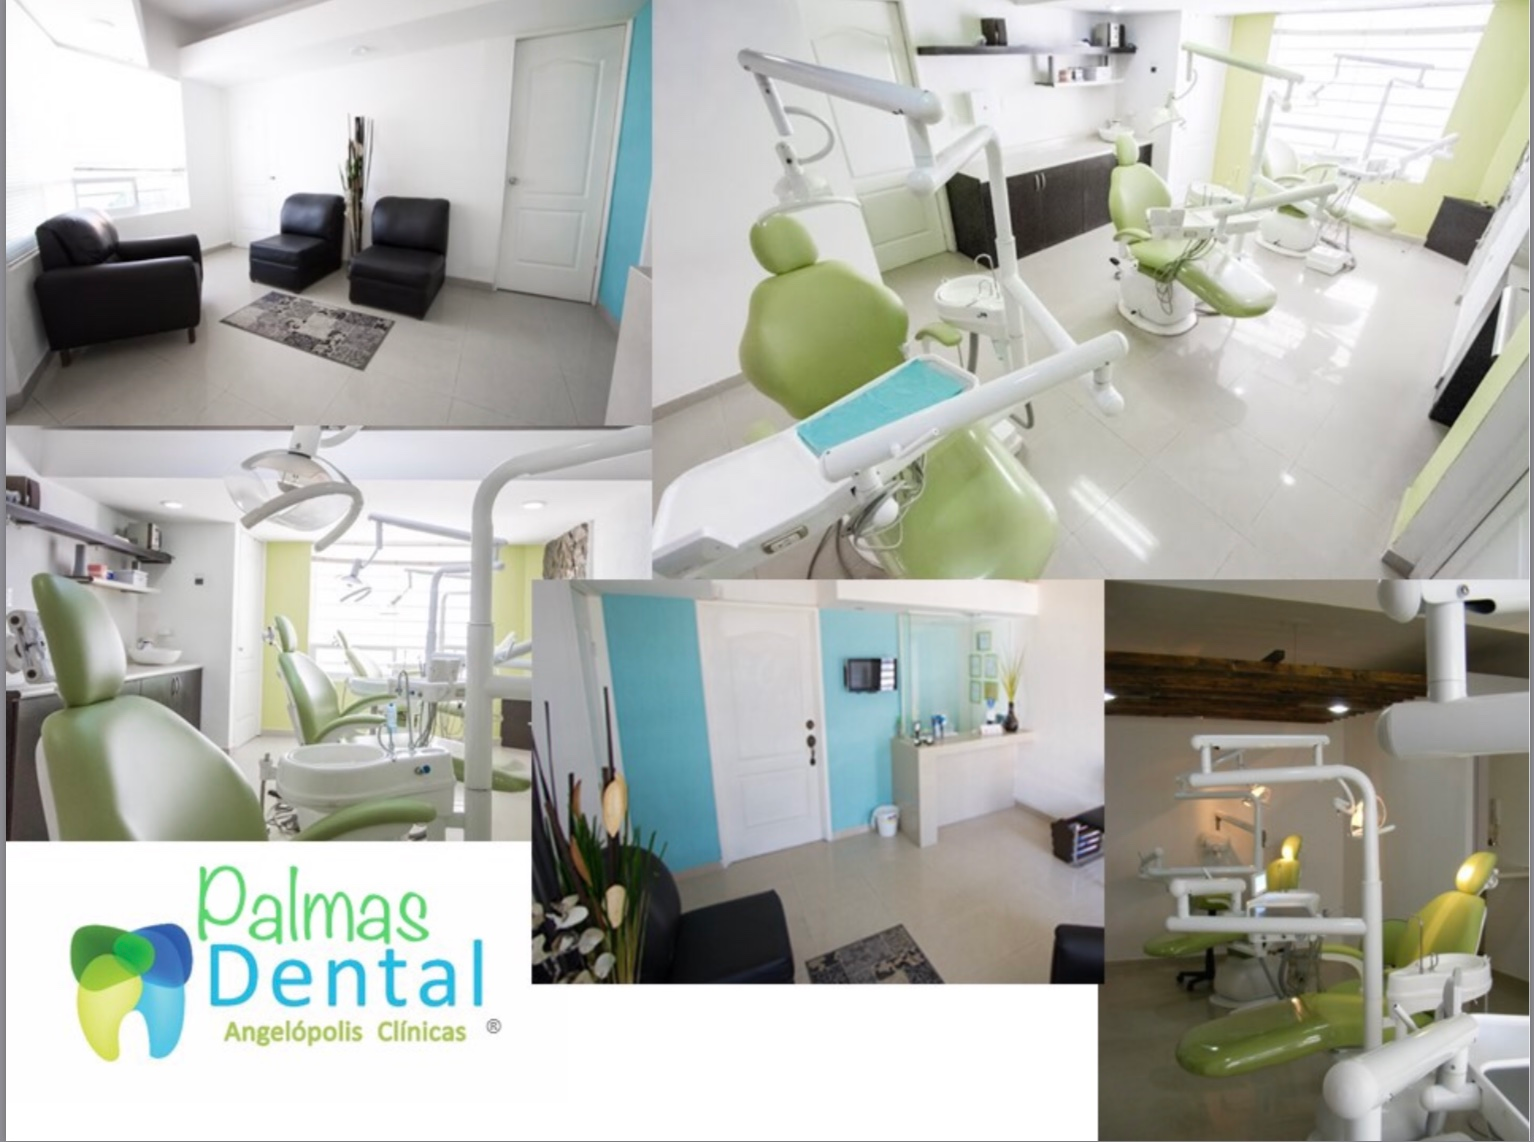 Dental Angelopolis - Palmas